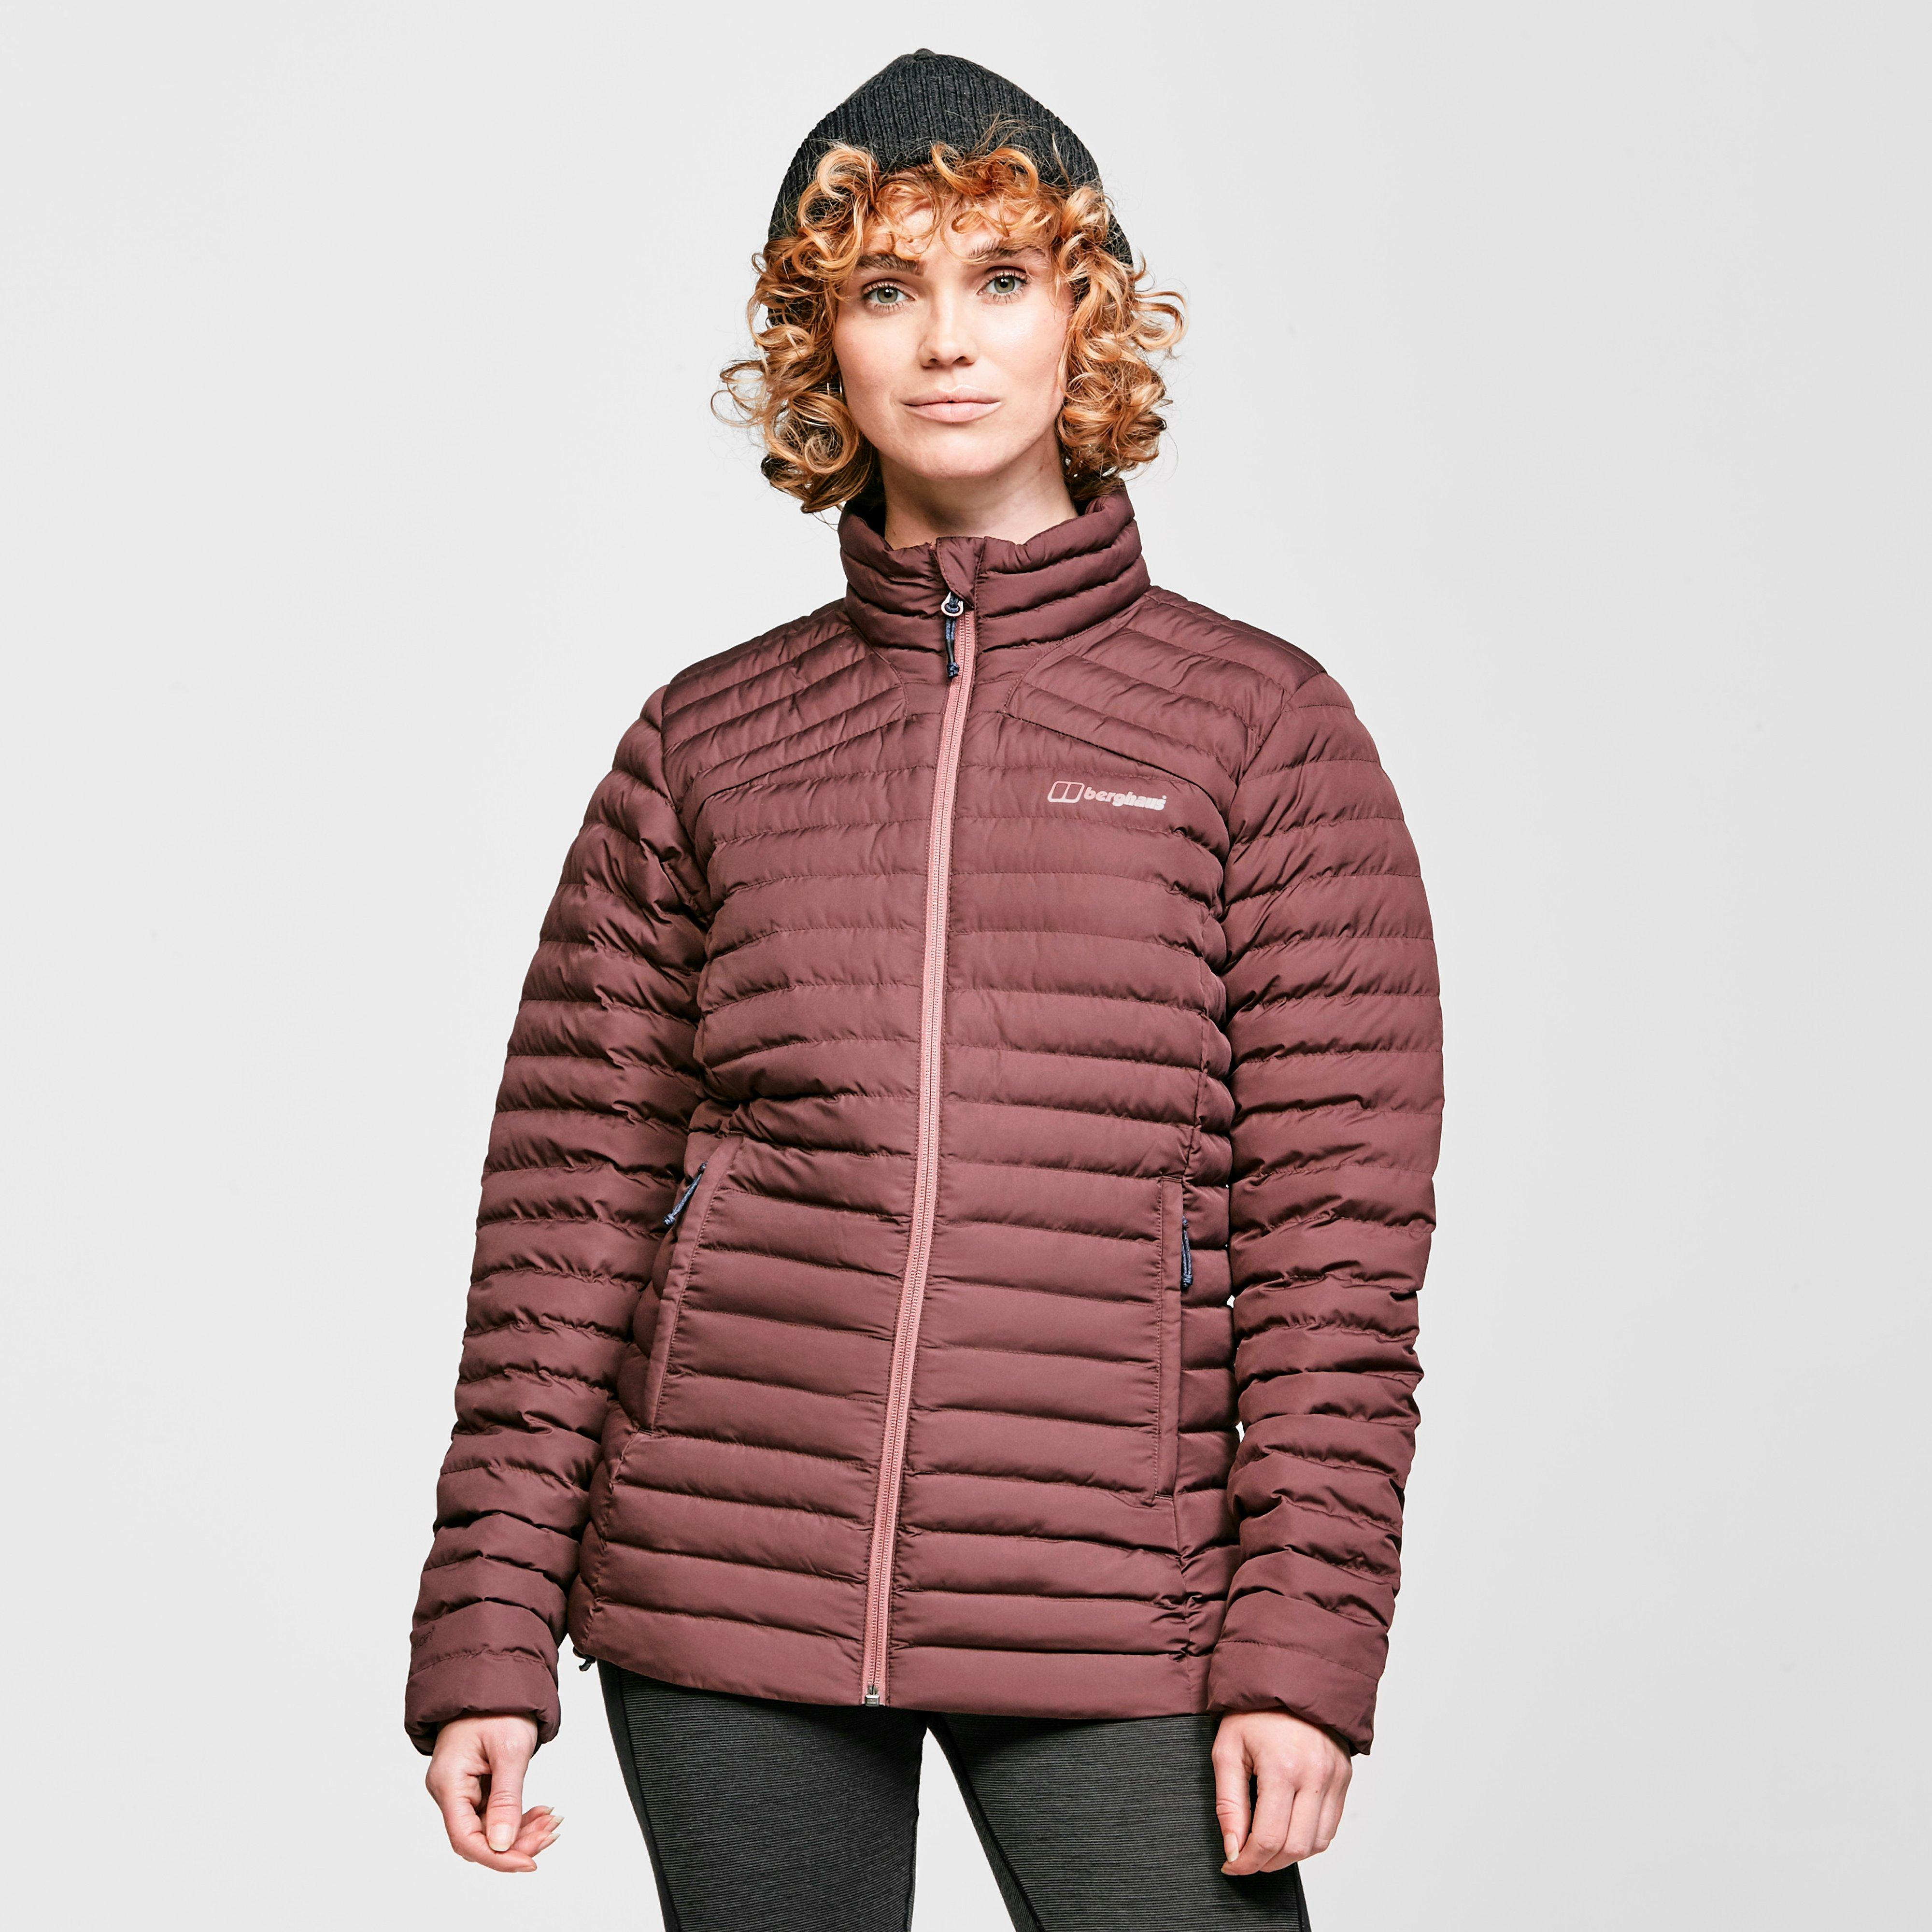 Berghaus Womens Nula Insulated Jacket - Red/red  Red/red